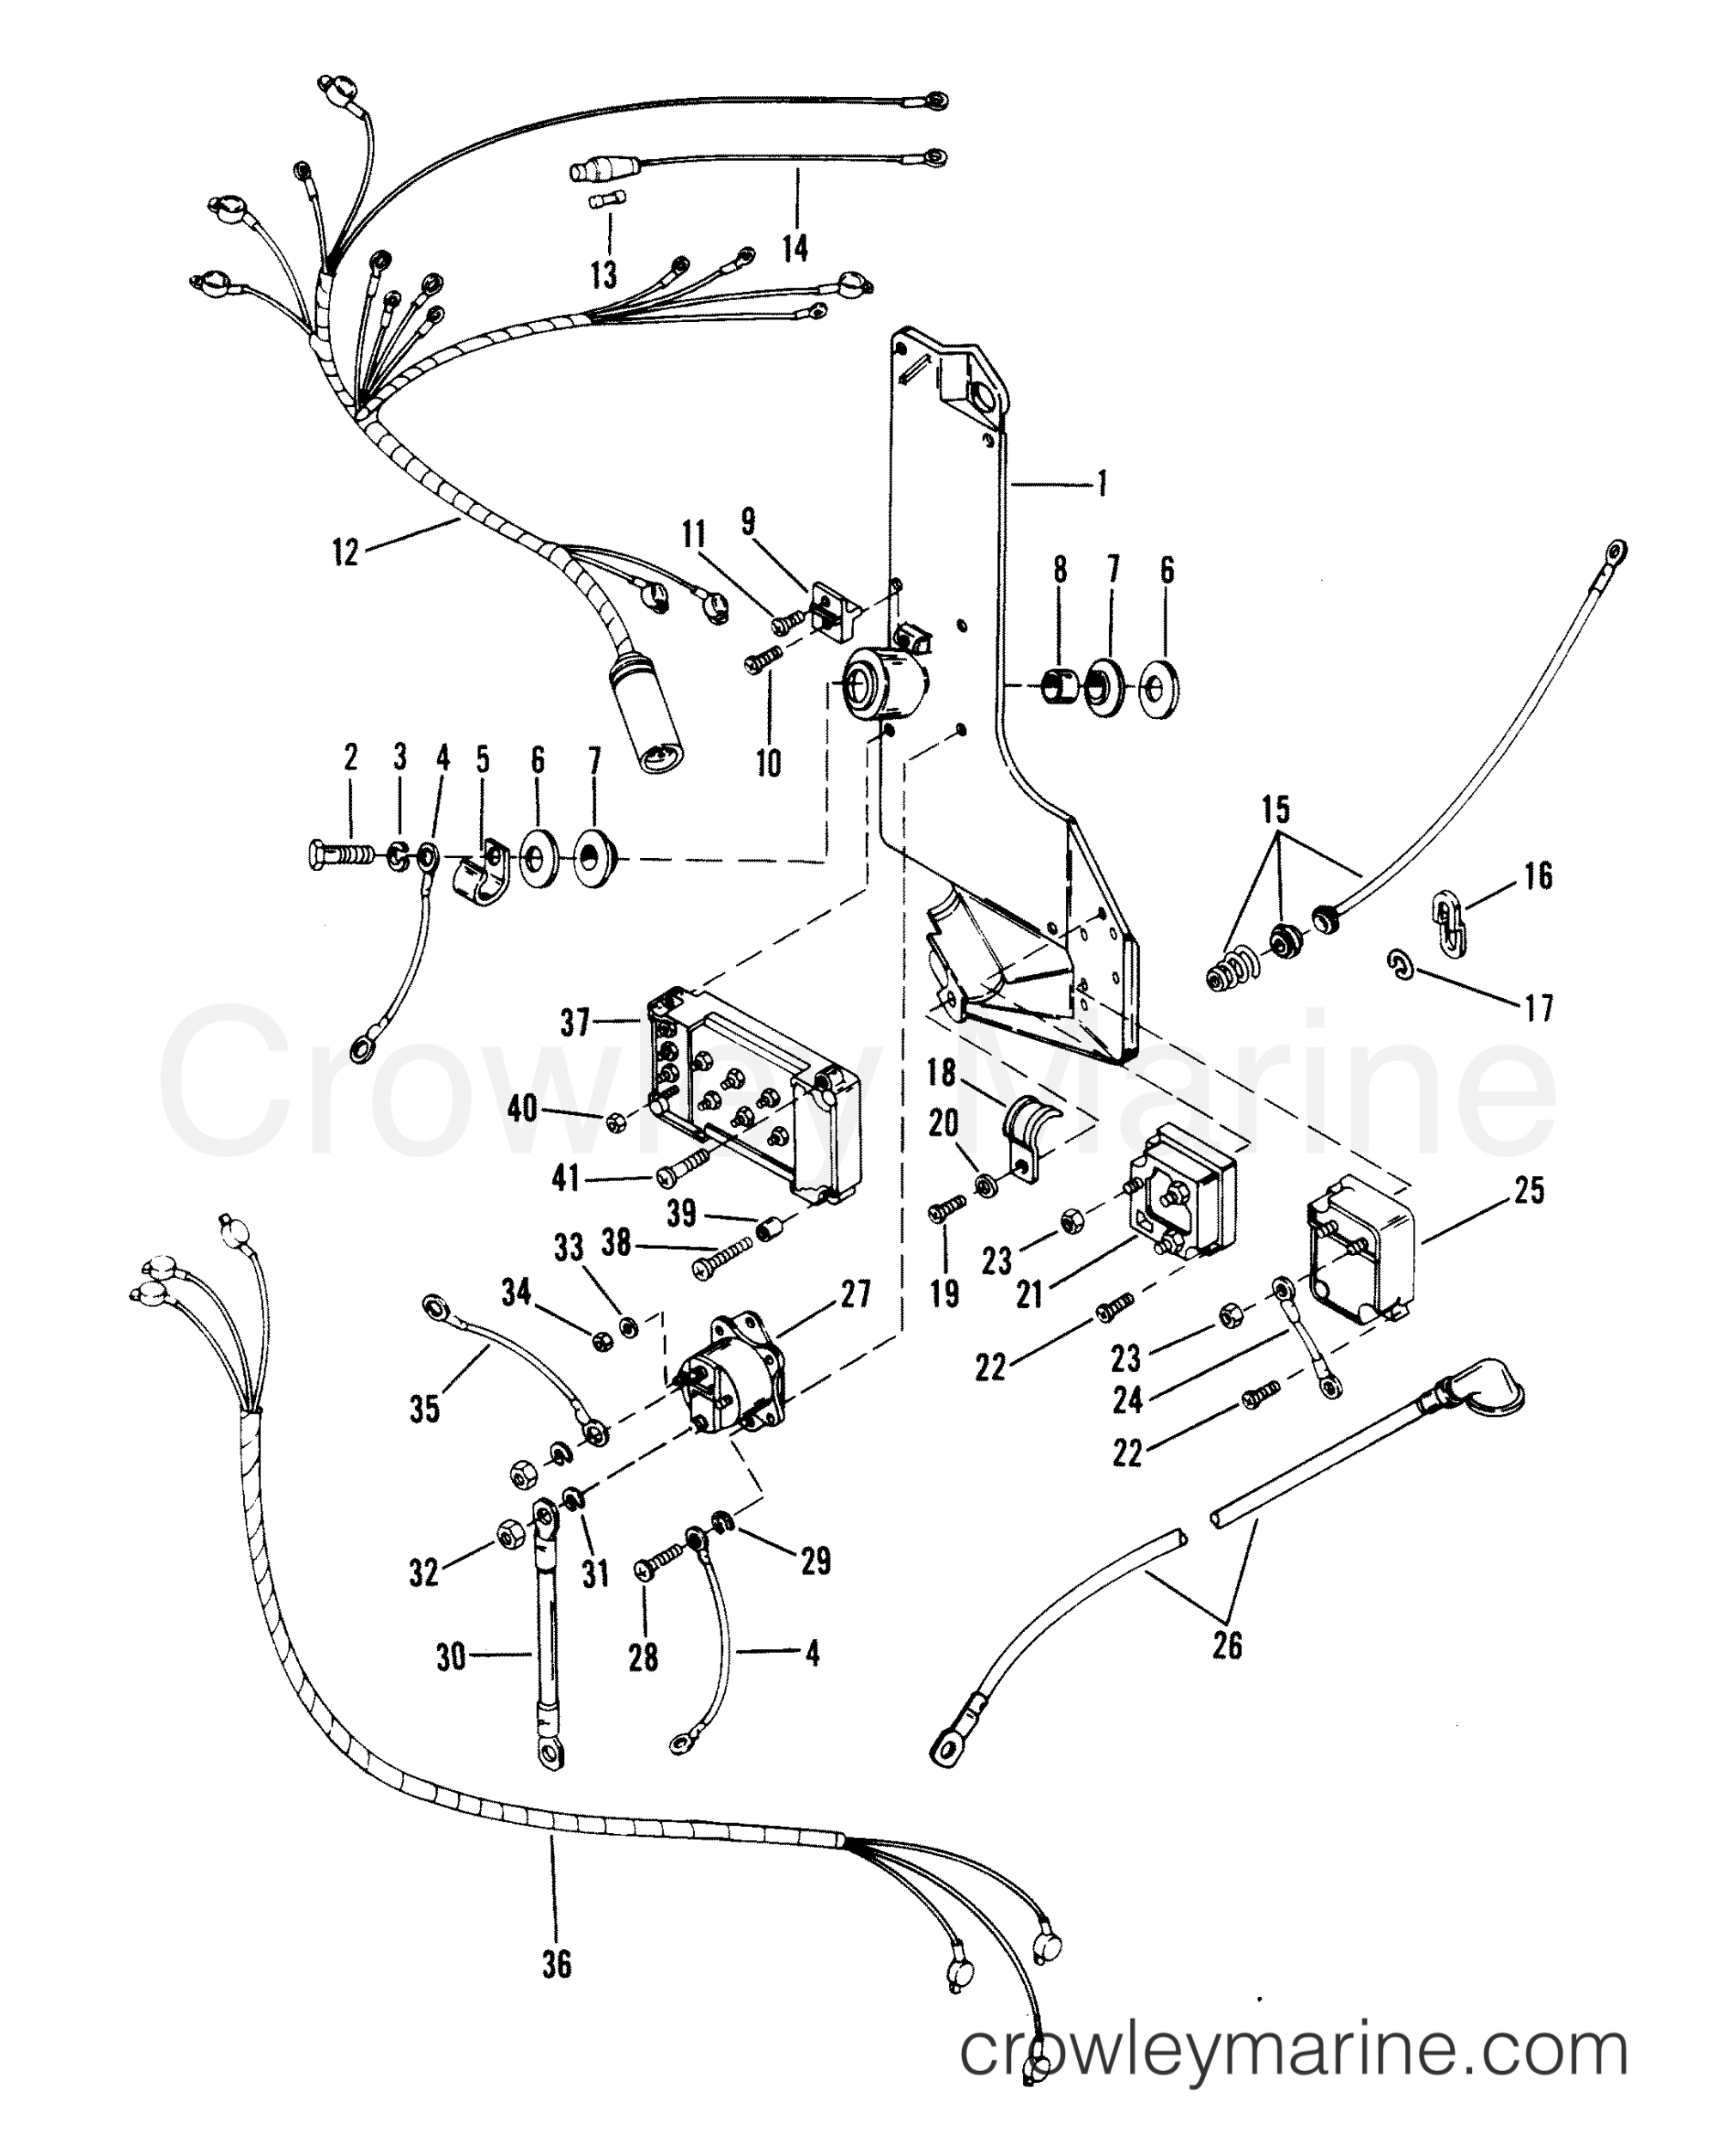 hight resolution of wiring harness starter solenoid and rectifier serial rangeserial range mercury race outboard merc 3 4